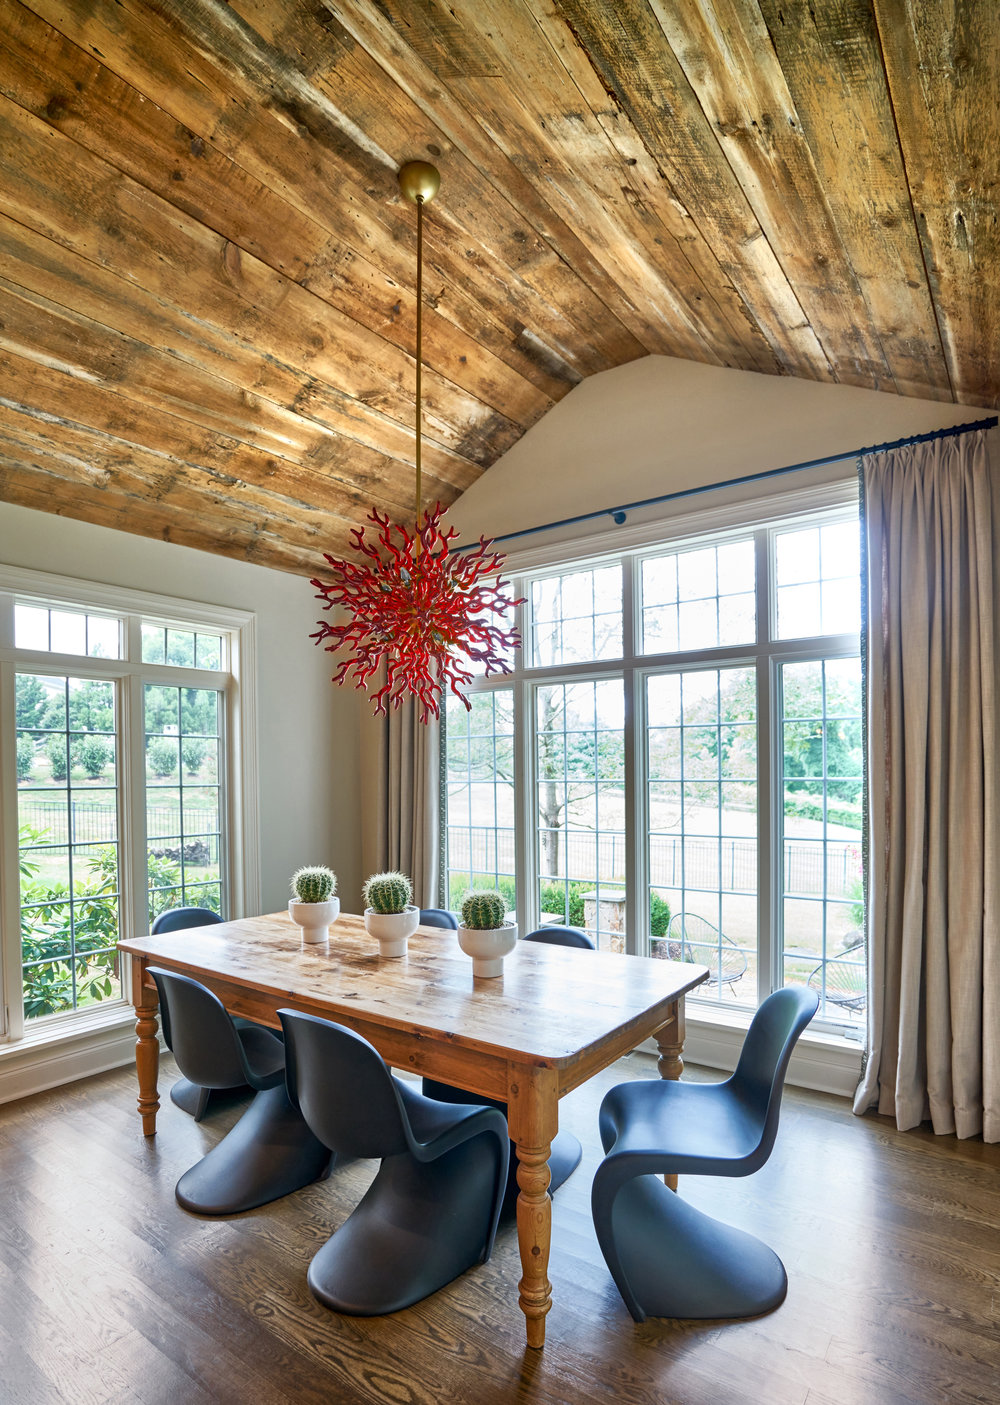 Bright modern pops with an rustic ceiling.